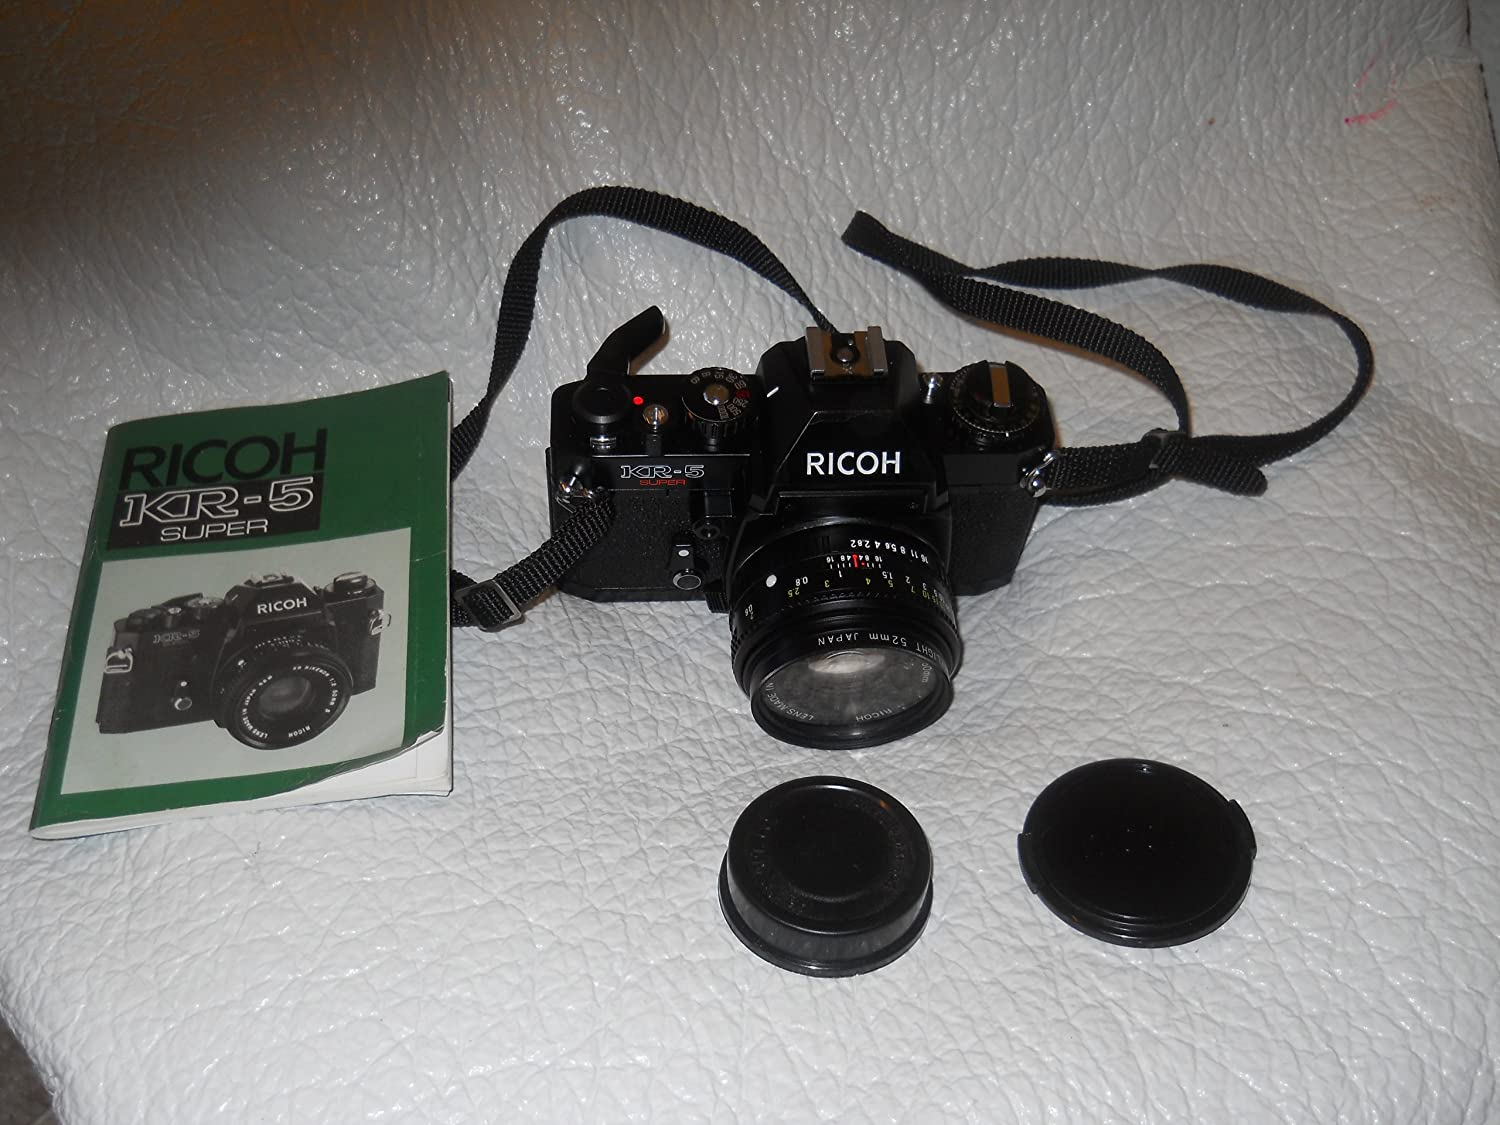 Ricoh Kr 5 Super Ii 35mm Film Camera Body Only Pentax K1000 Diagram Related Keywords Suggestions Wedding Ceremony Accessories Photo